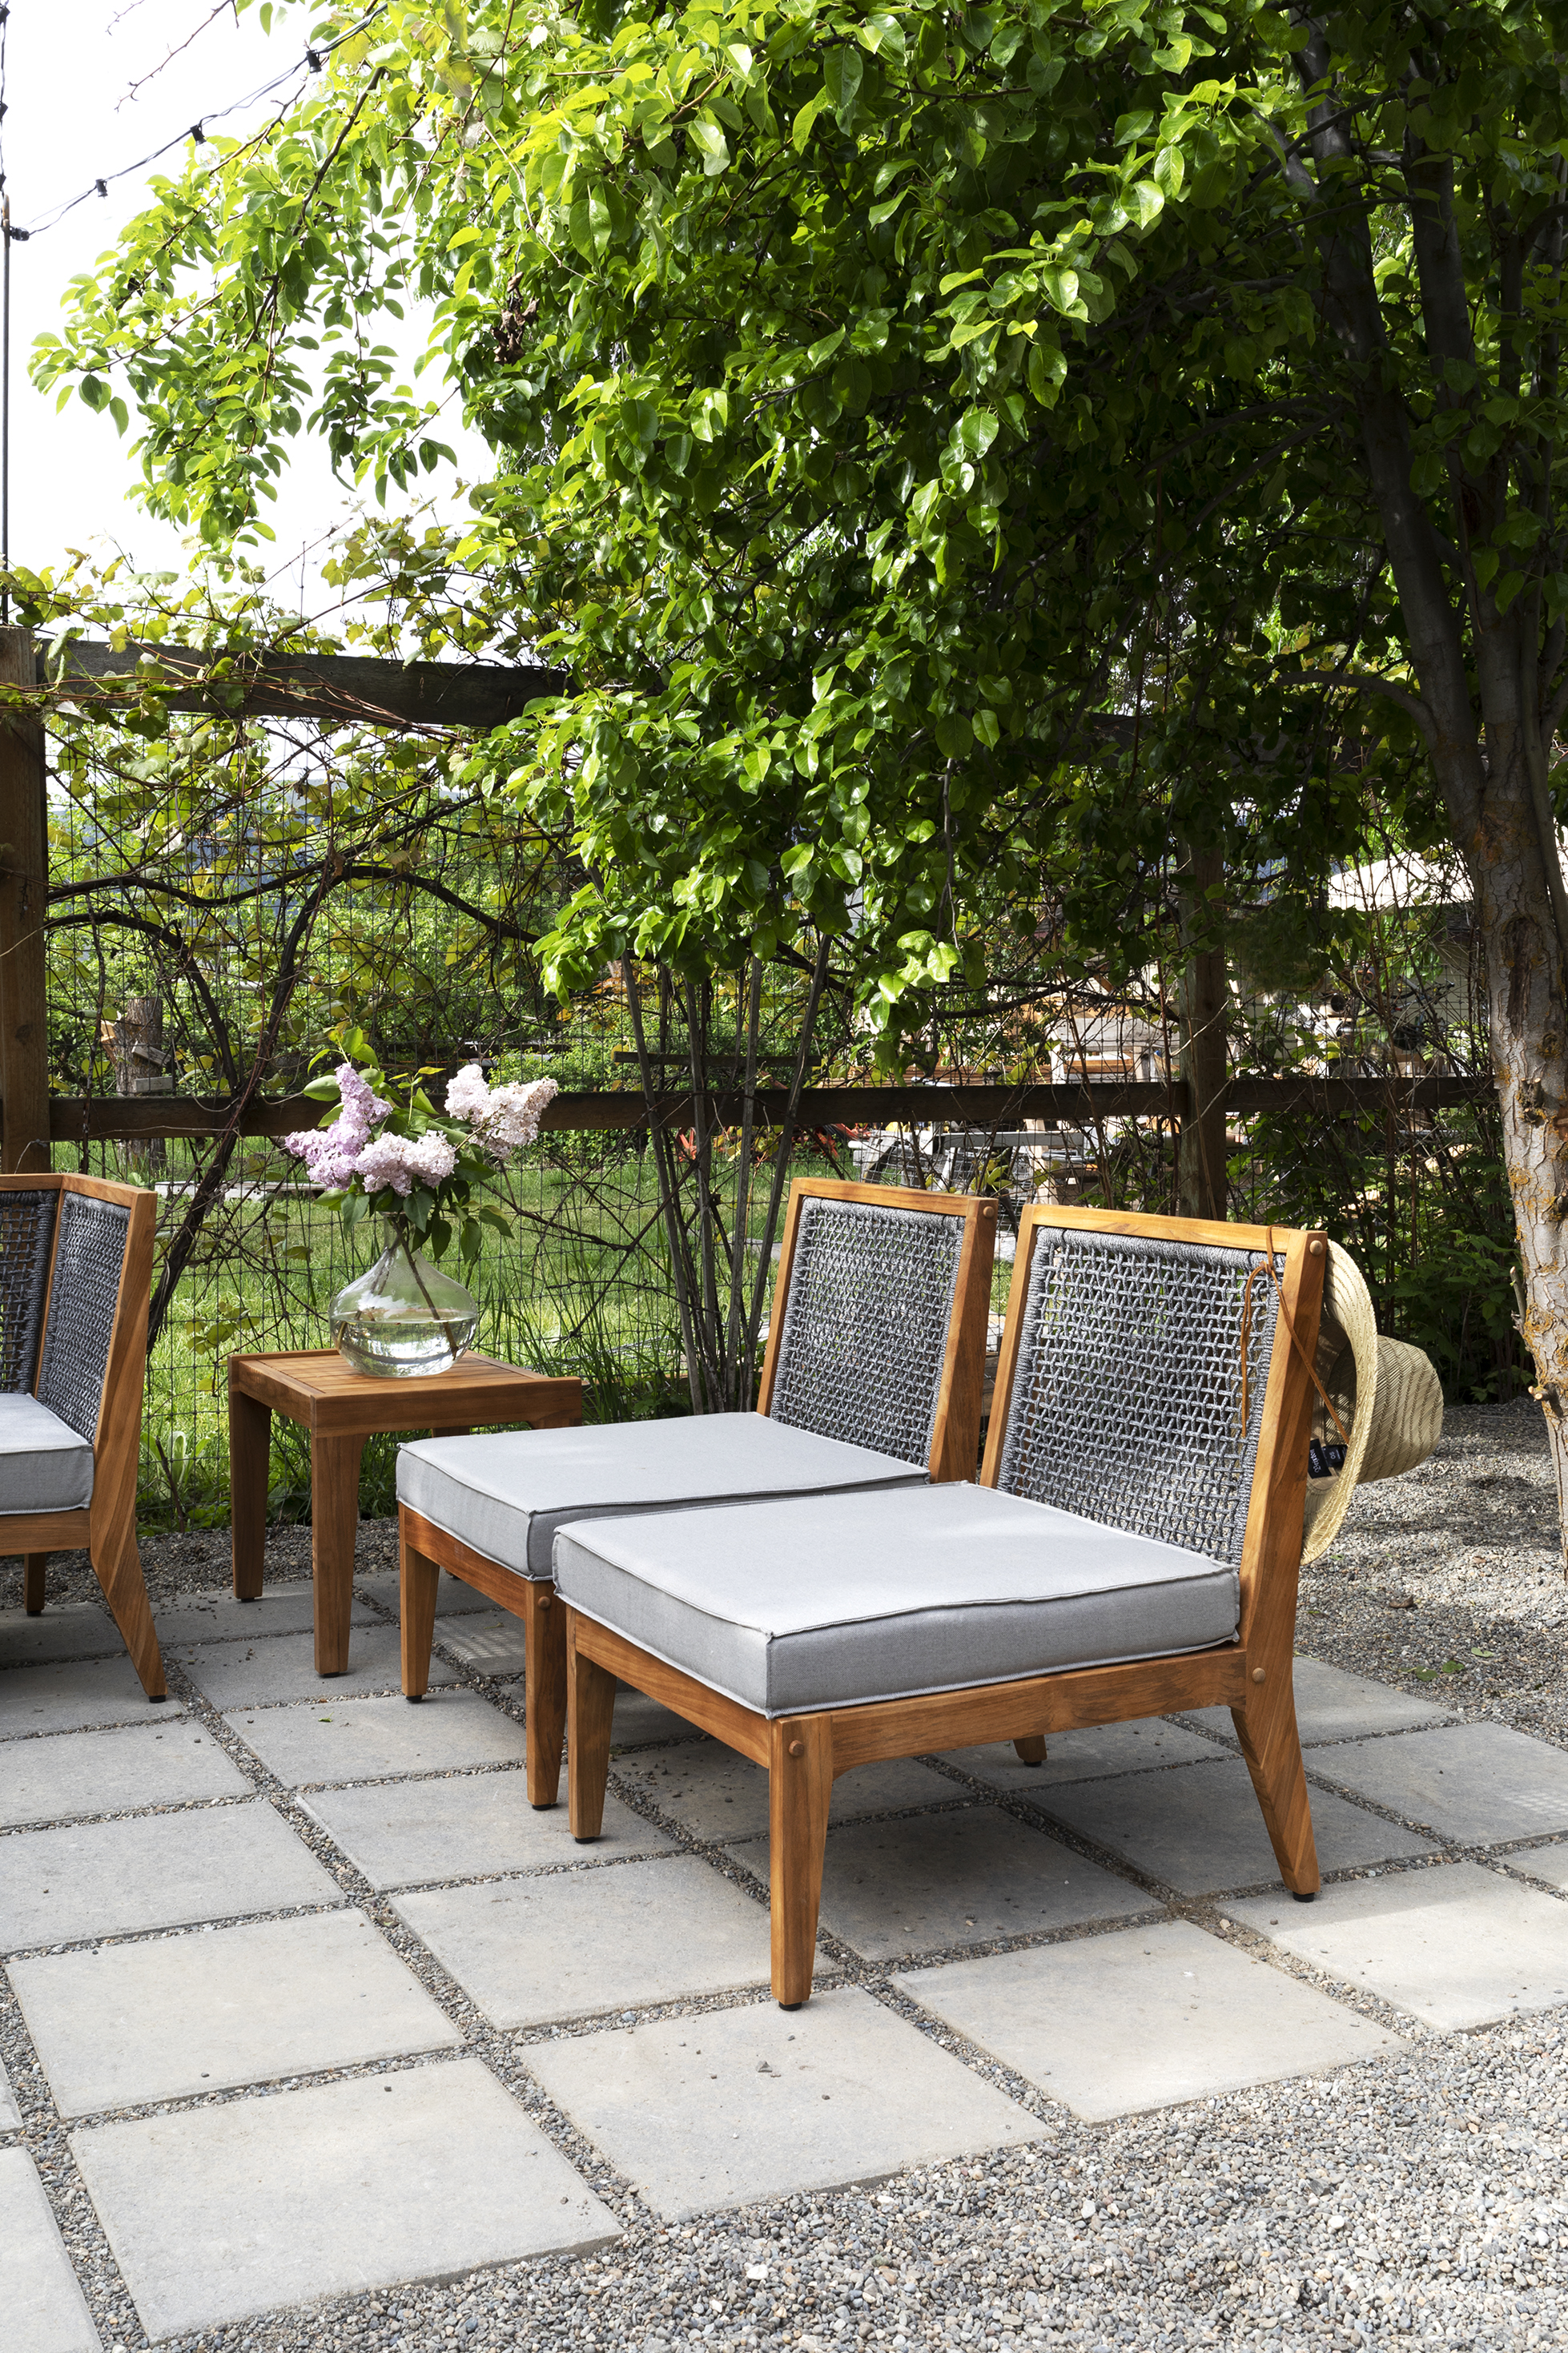 The Grit and Polish - Farmhouse Garden Patio Armless Chairs.jpg